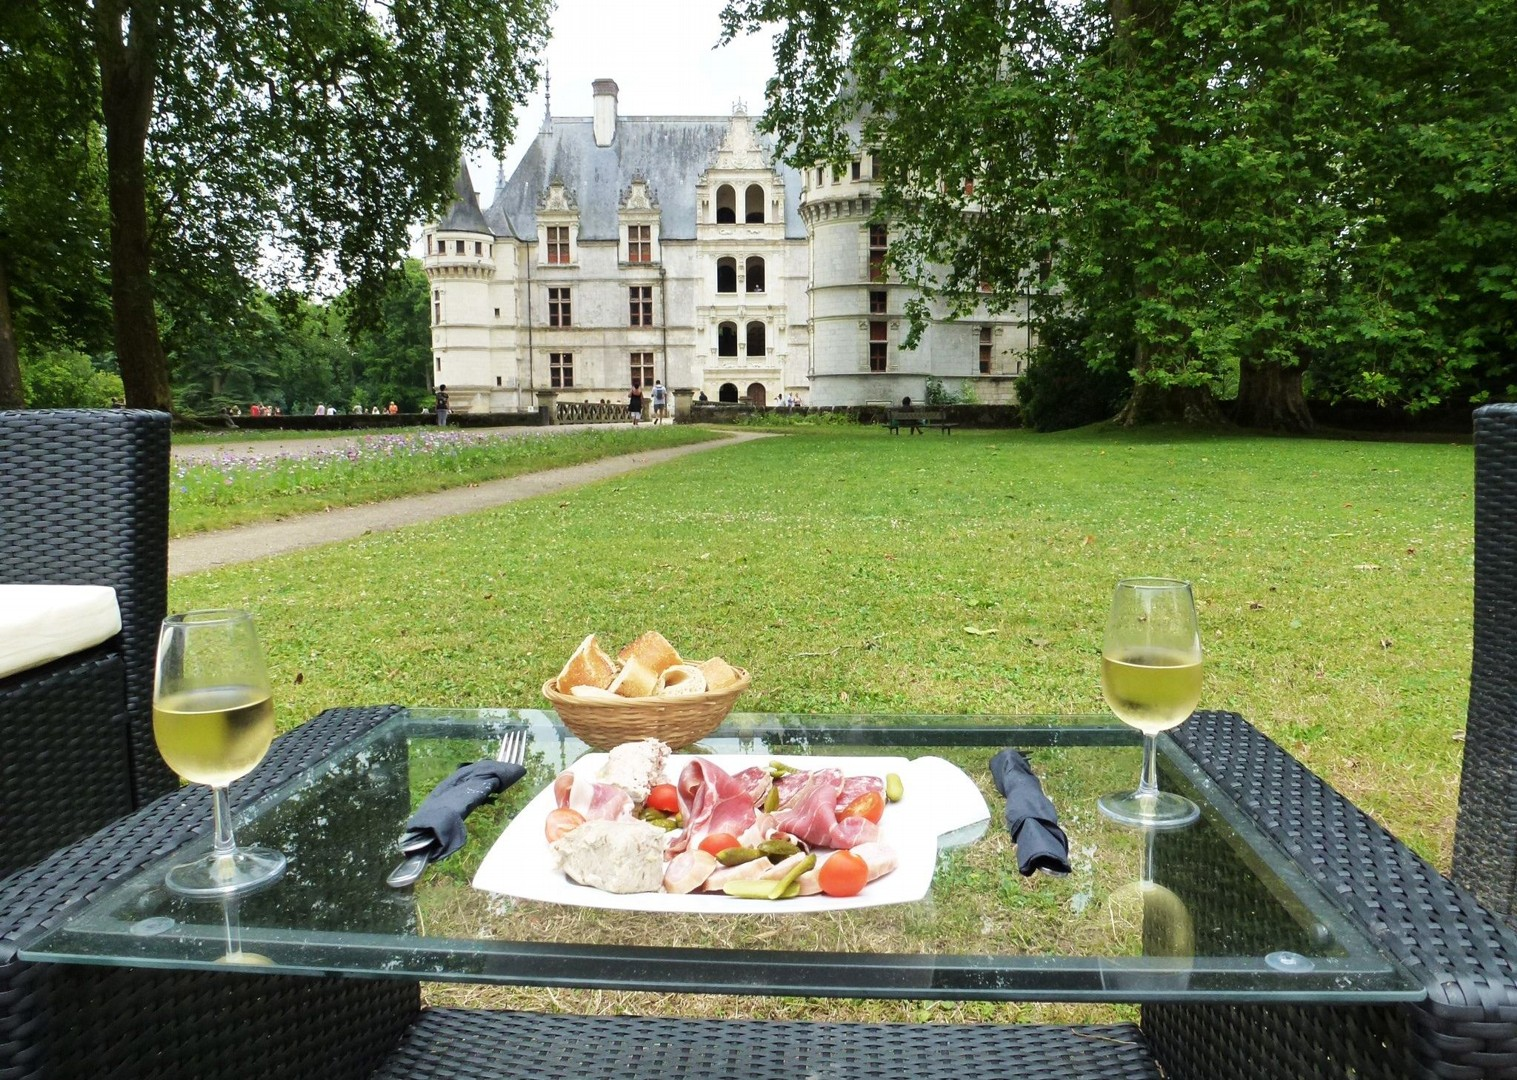 france-al-fresco-self-guided-loire-holiday.jpg - France - Valley of the Loire - Self-Guided Leisure Cycling Holiday - Leisure Cycling